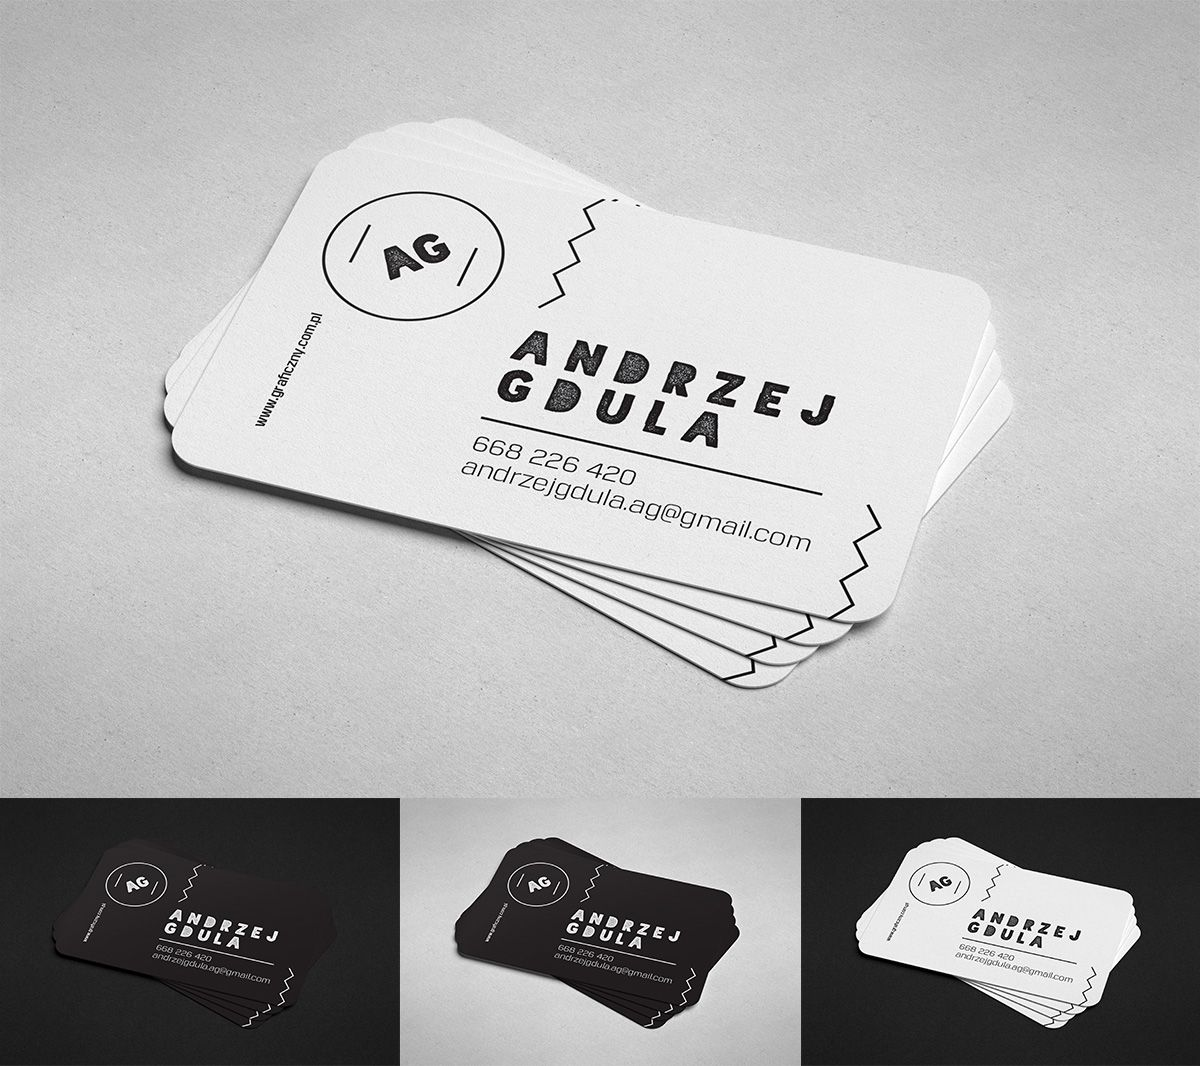 Mockup round corner business card graphic design for Business card rounded corners